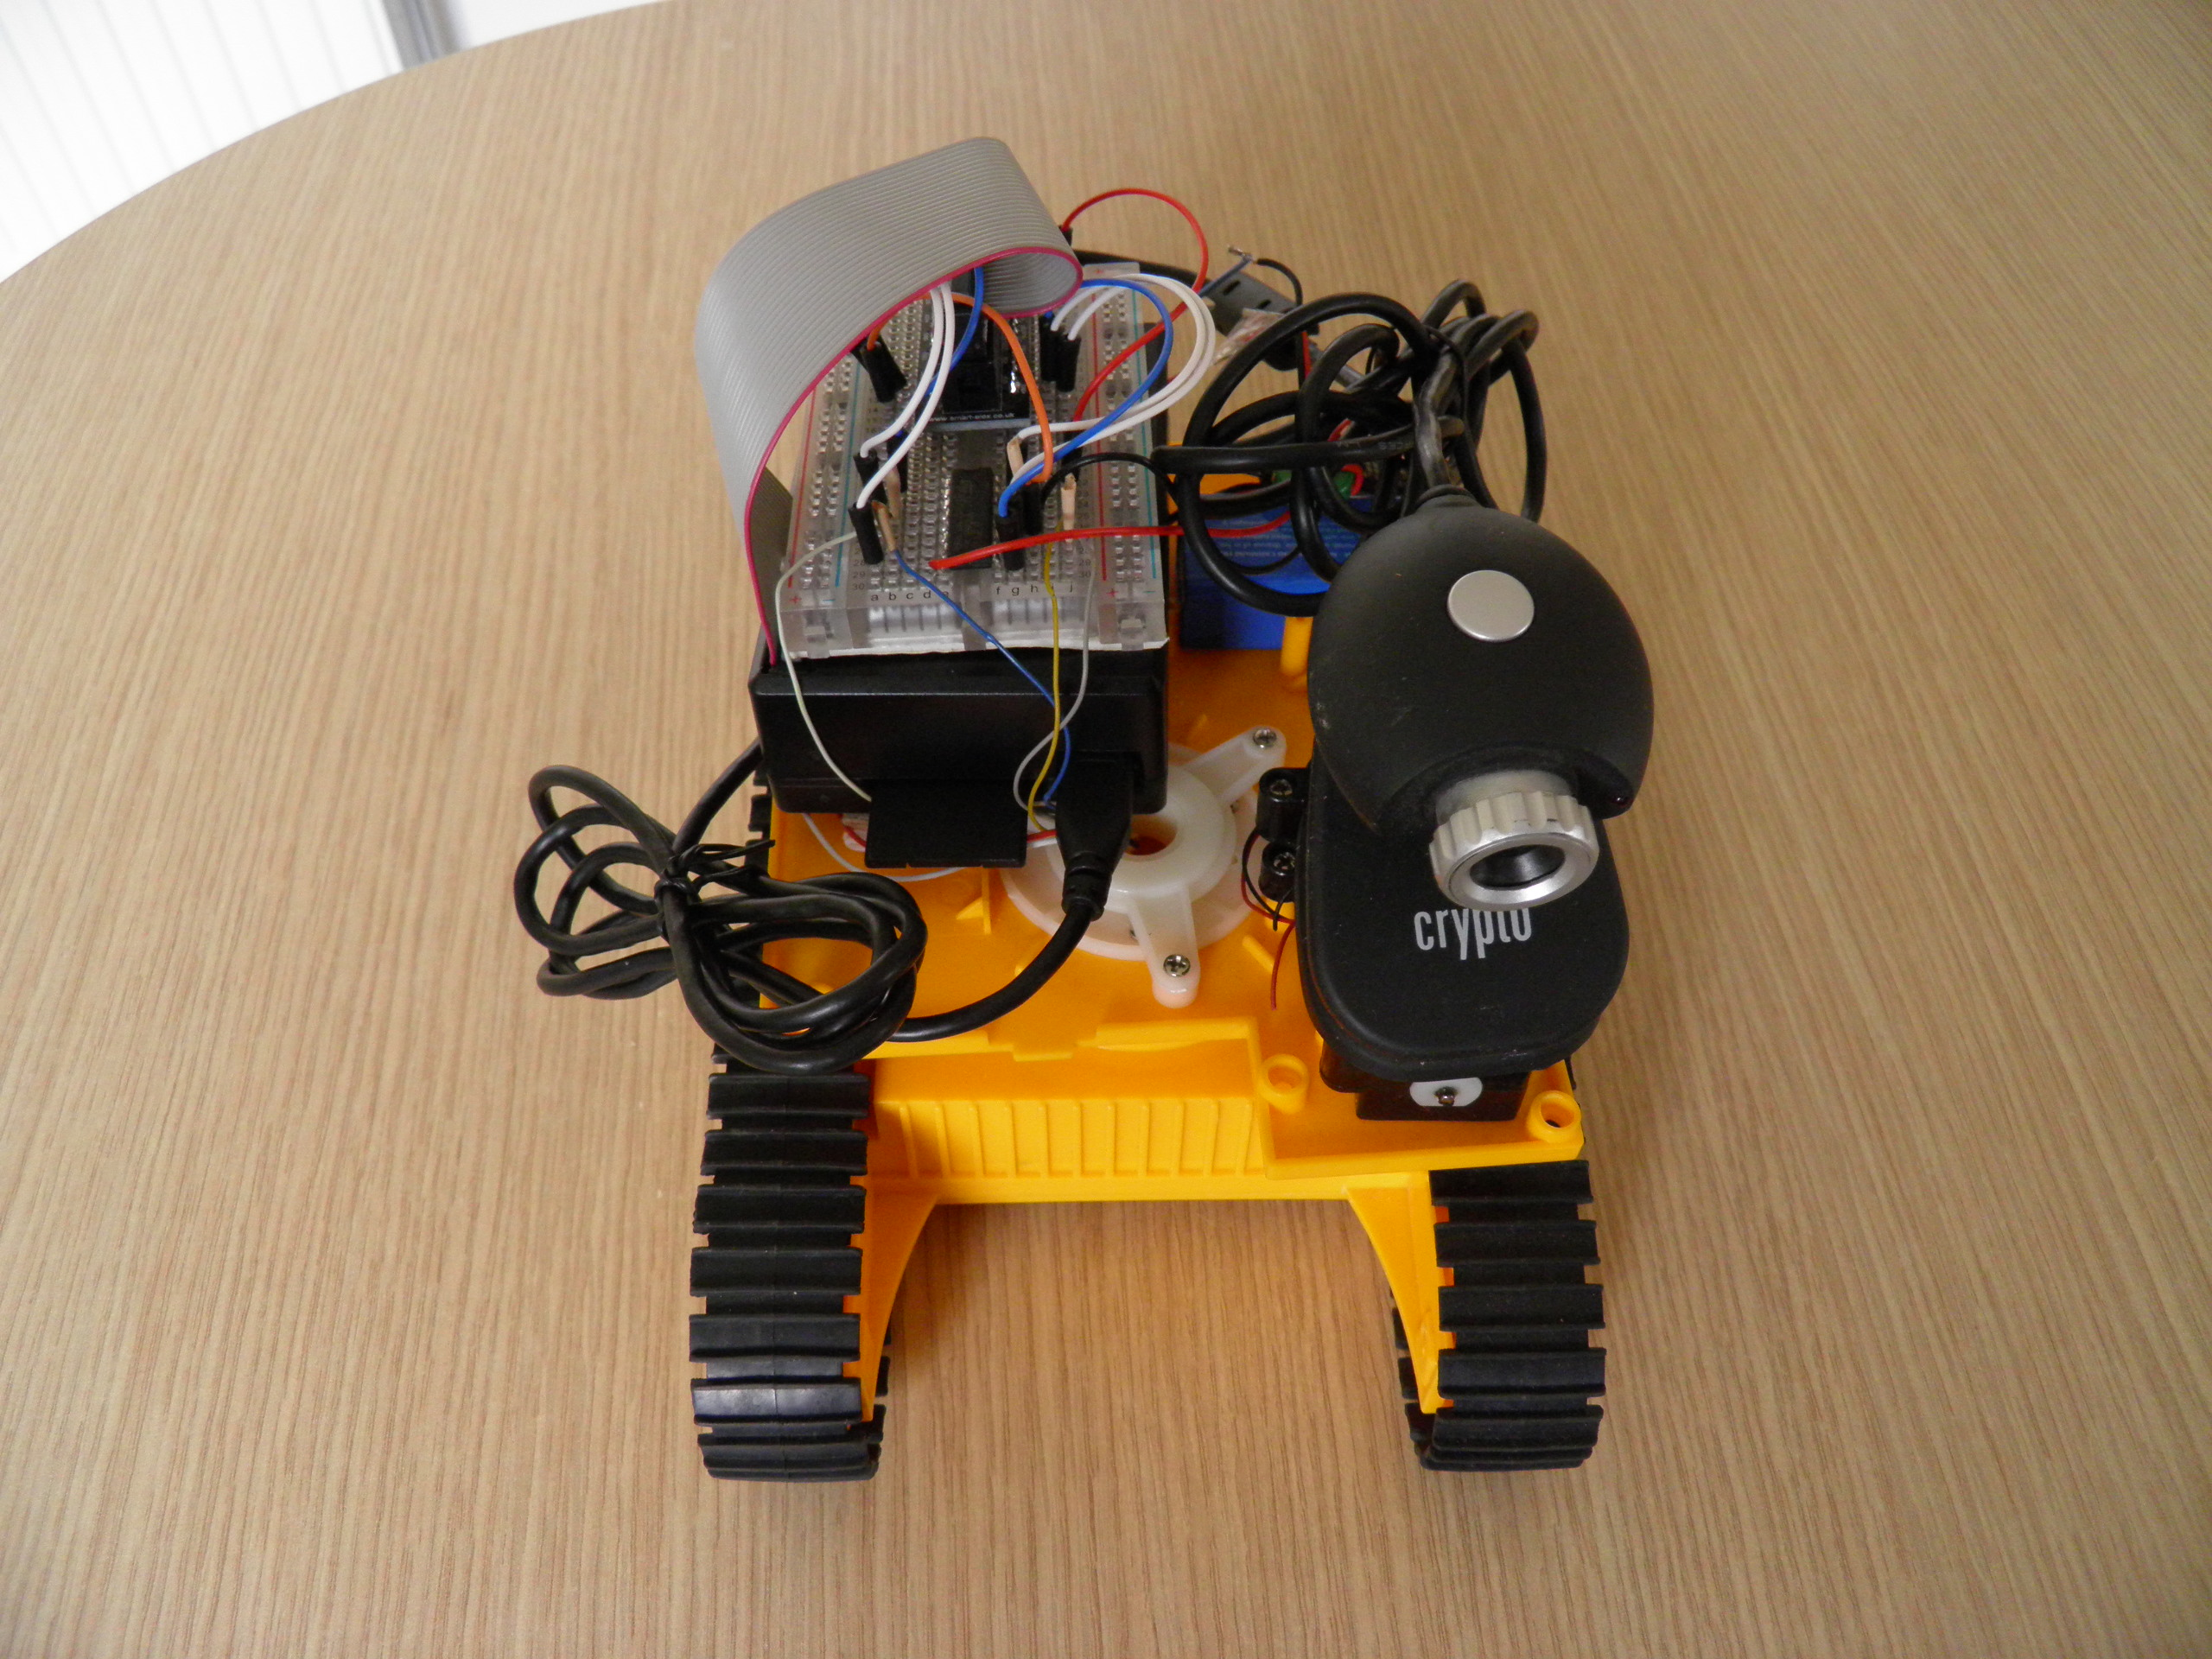 A USB camera for the Spy Rover worked better for this build